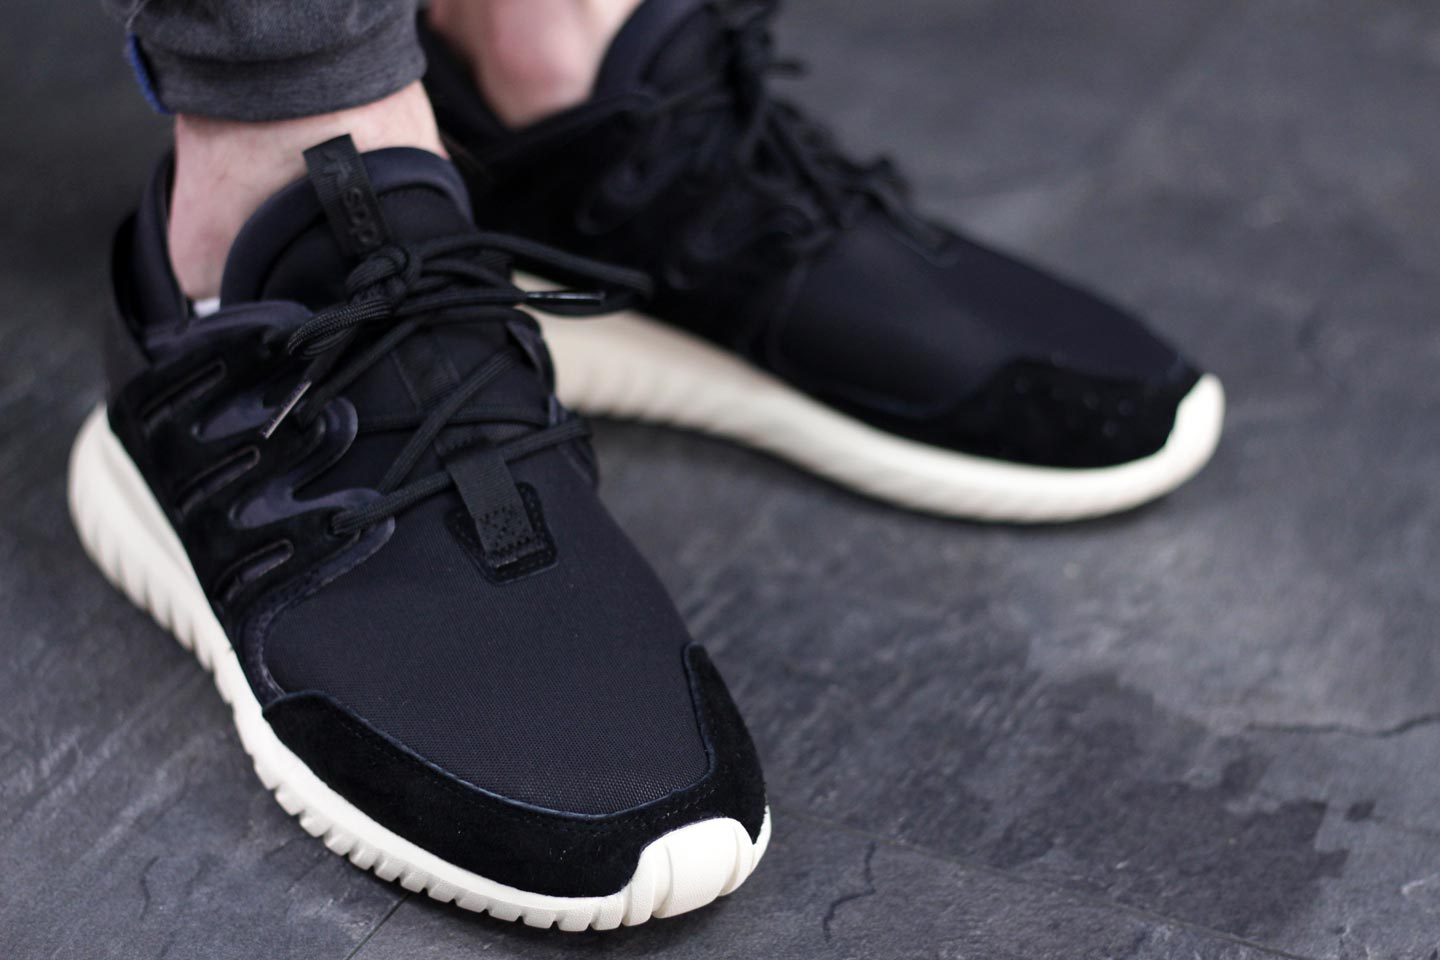 Yeezy Vibes On The New adidas Tubular Shadow